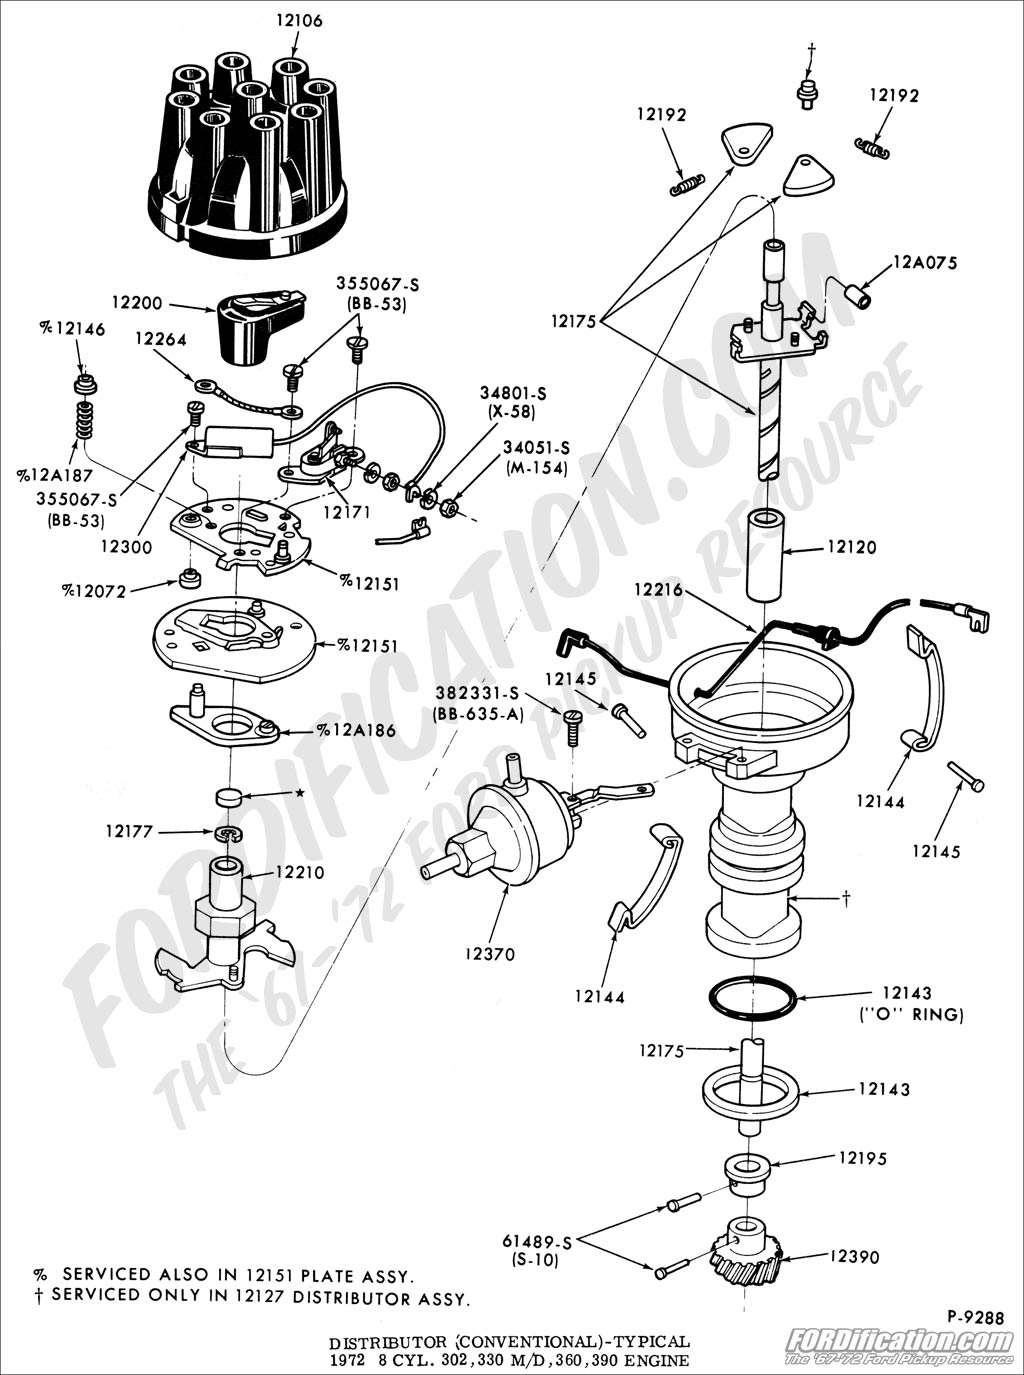 67 Dodge Ignition Wiring Diagram Library Mustang Schematic Ford Truck Technical Drawings And Schematics Section I Electrical 1965